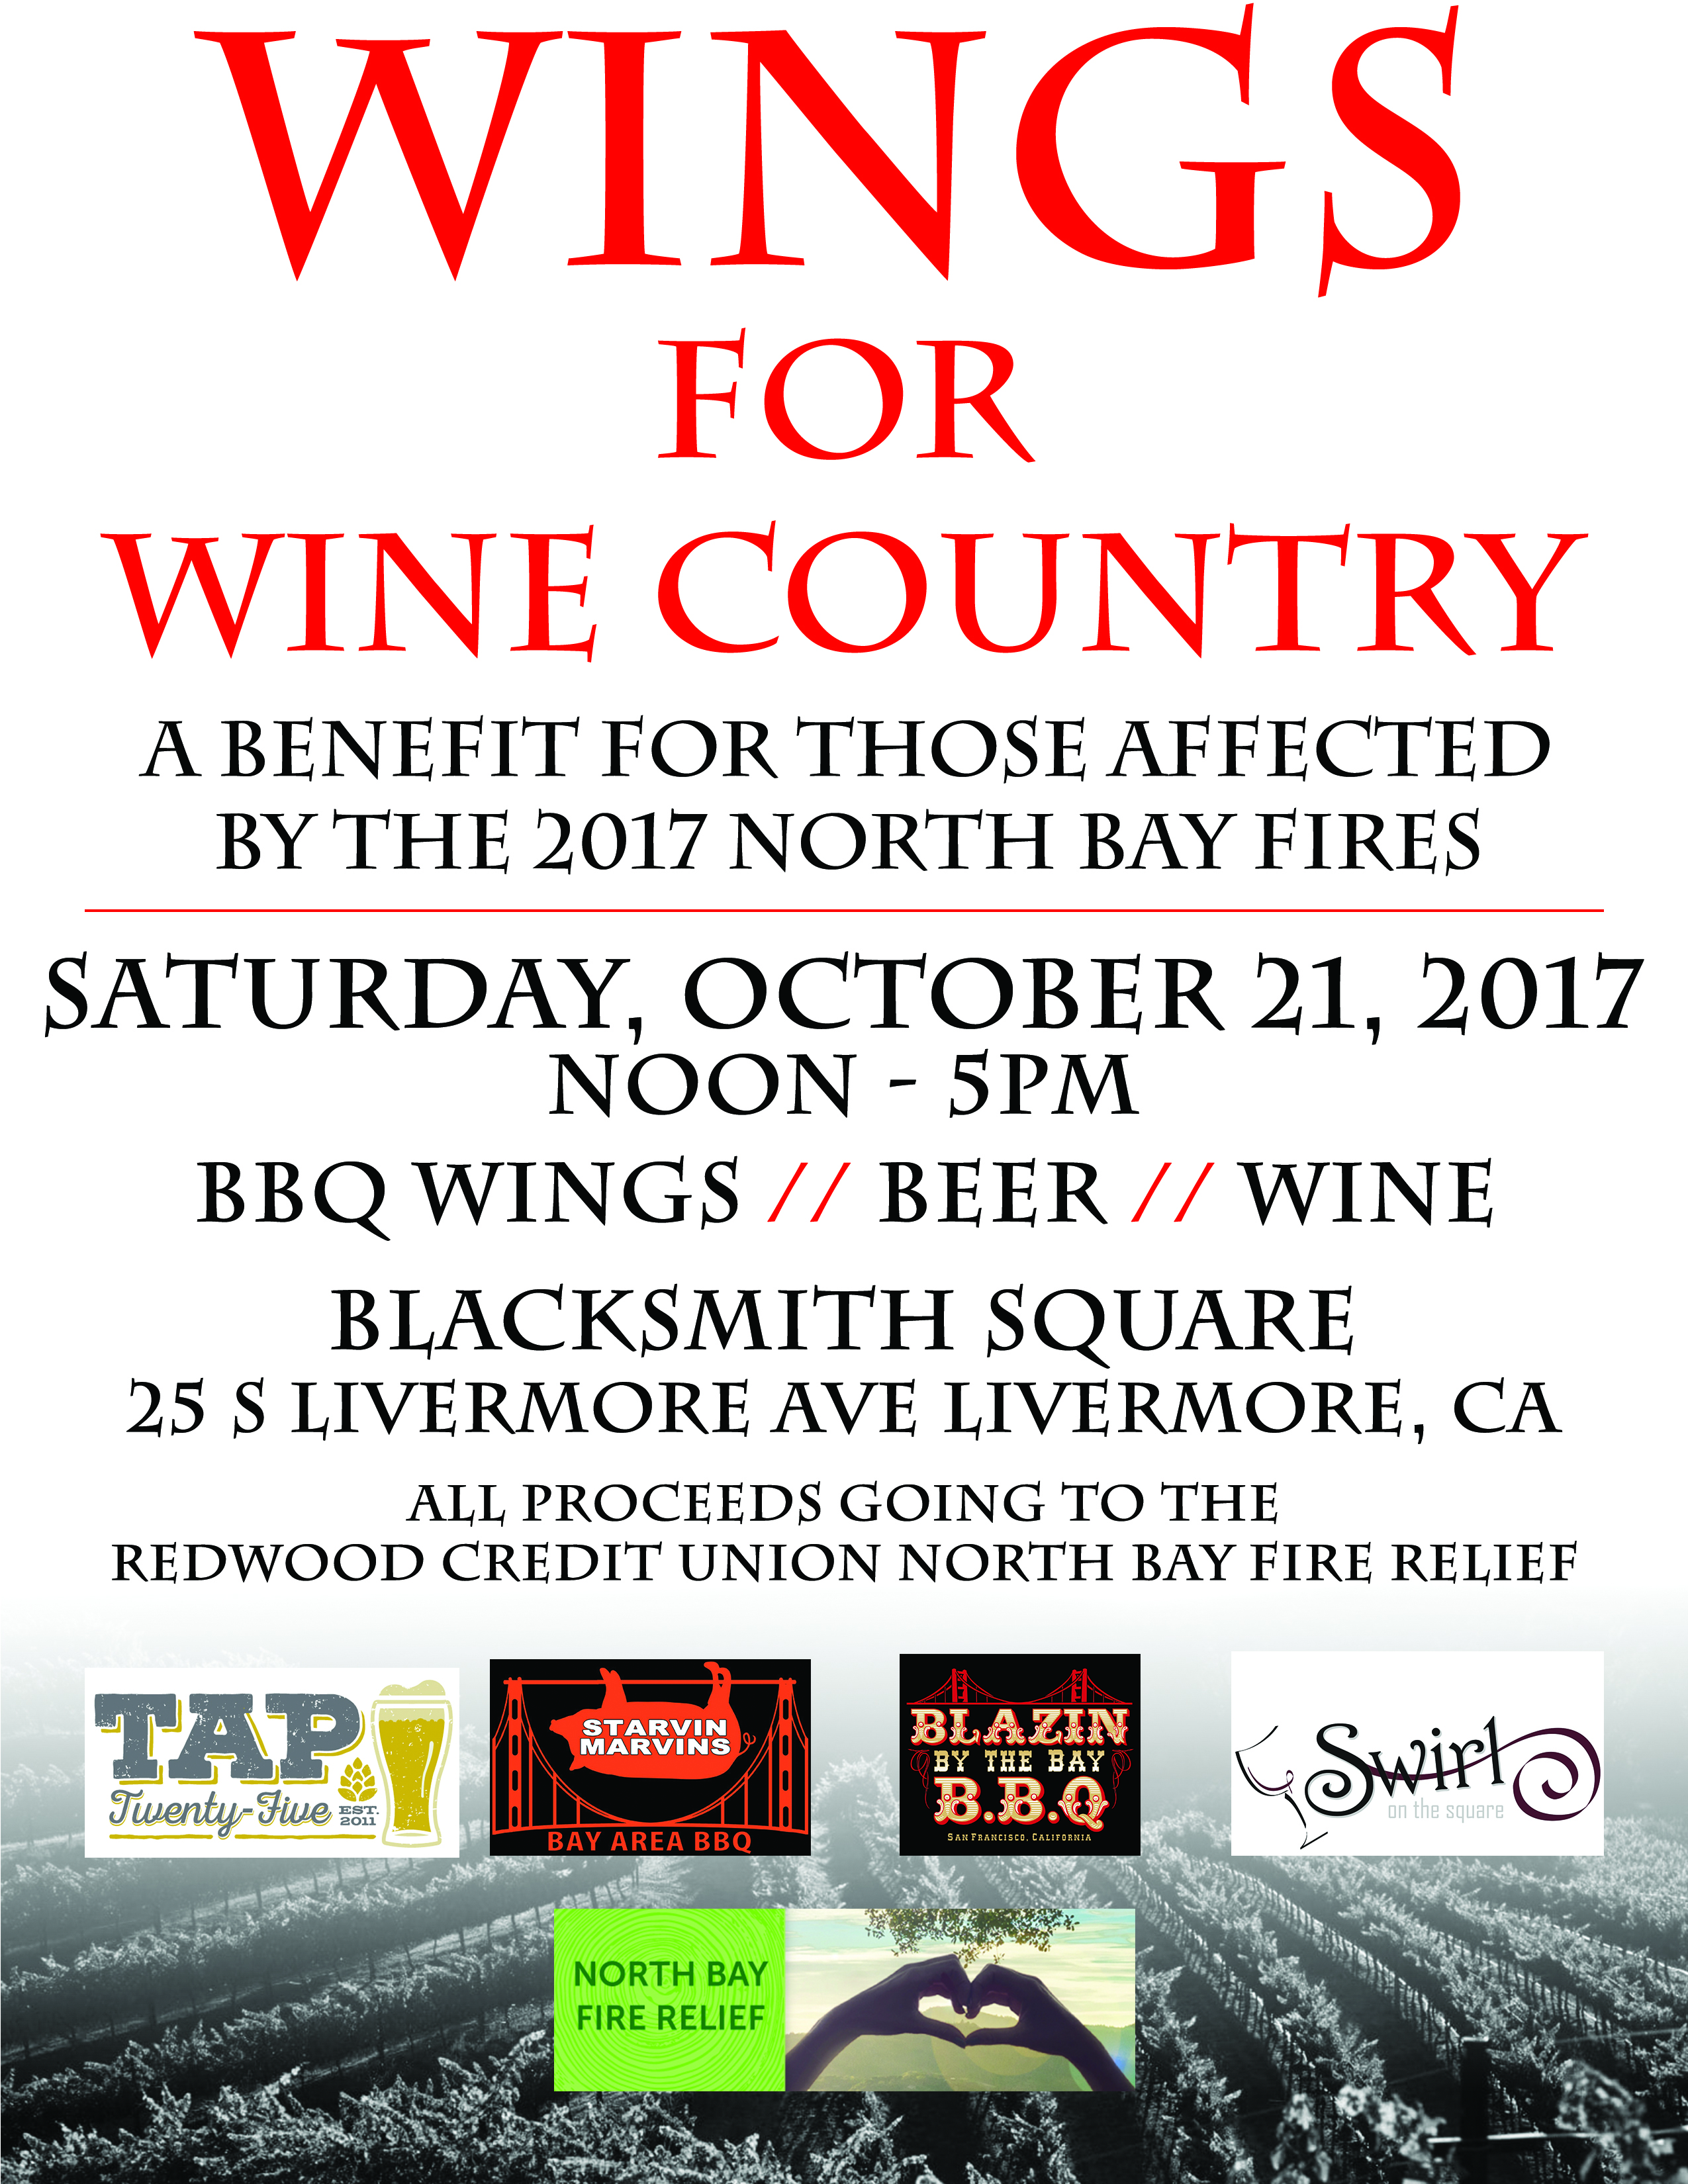 North Bay Fires Benefit: Wings For Wine Country